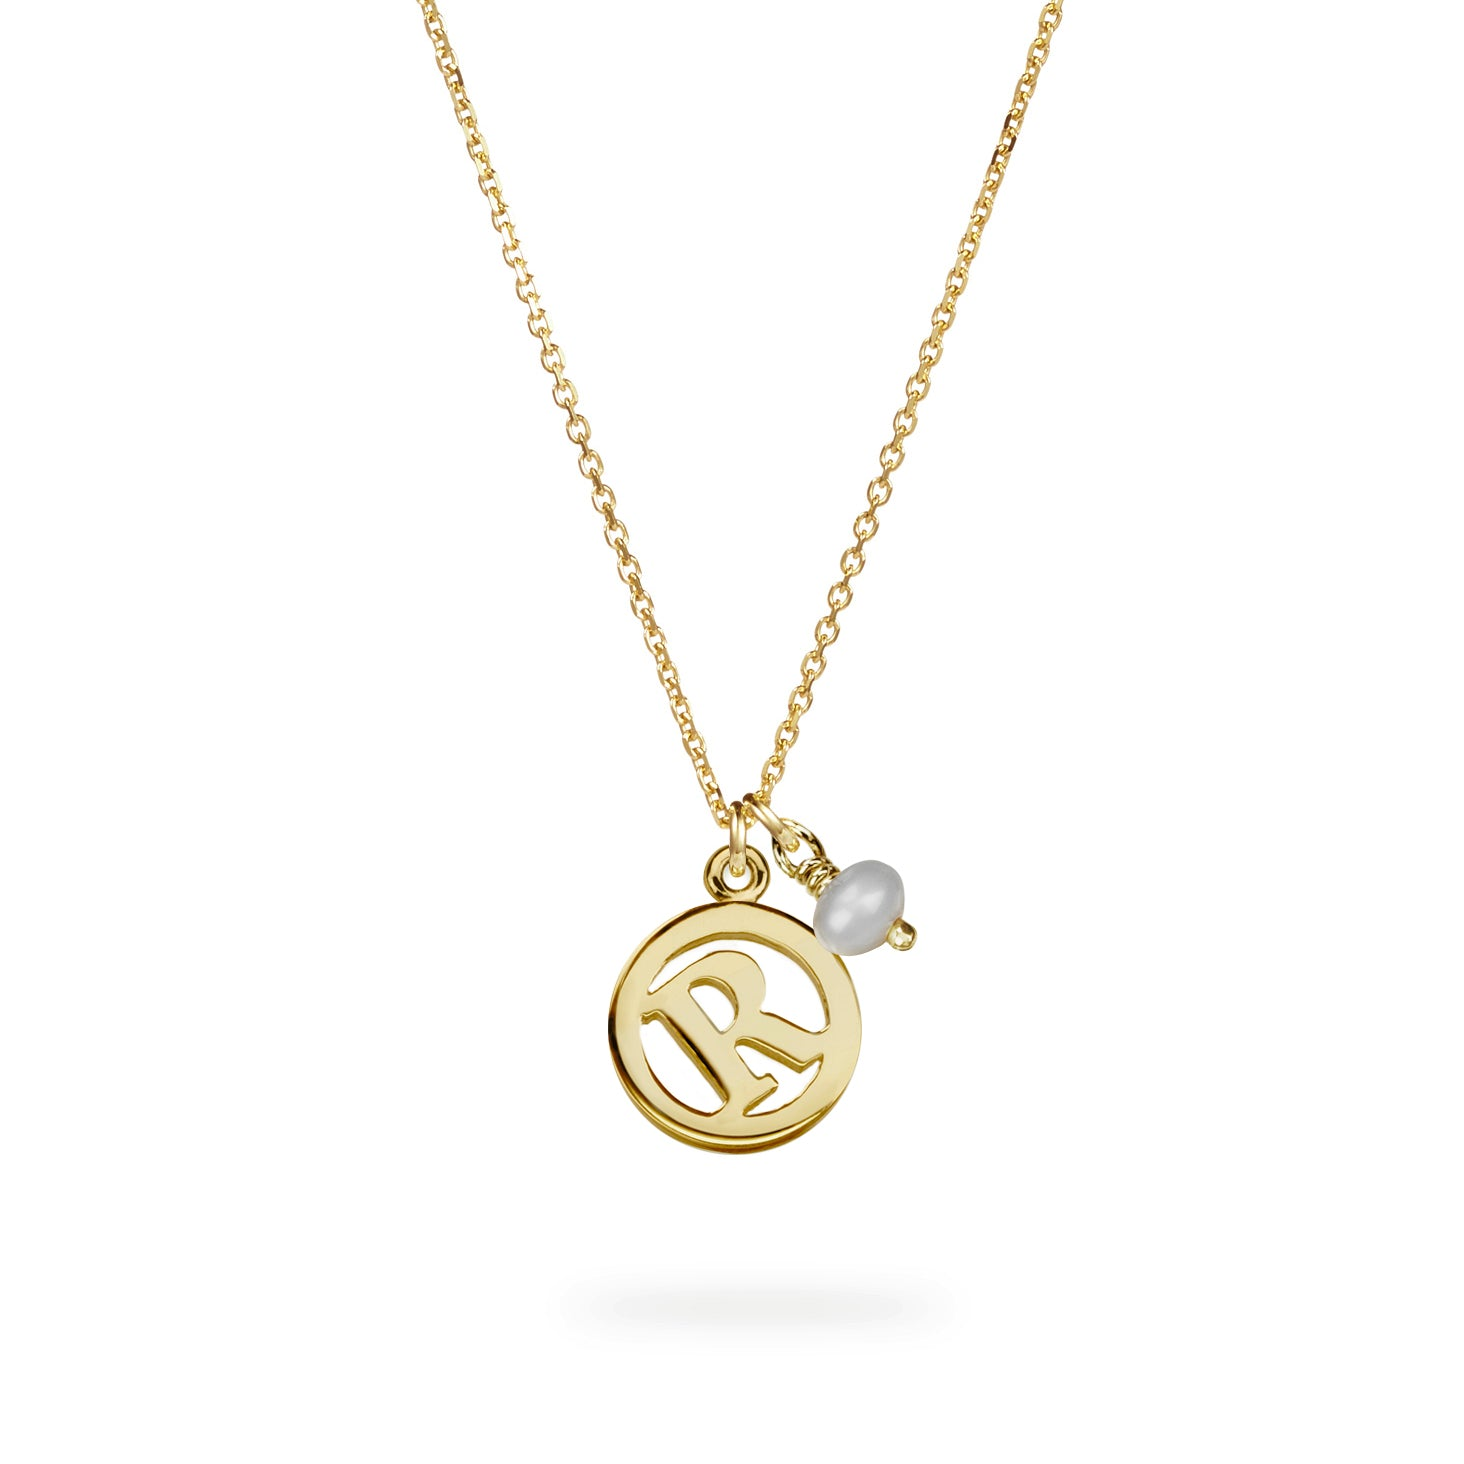 Luke Rose Jewellery gold pearl initial necklace